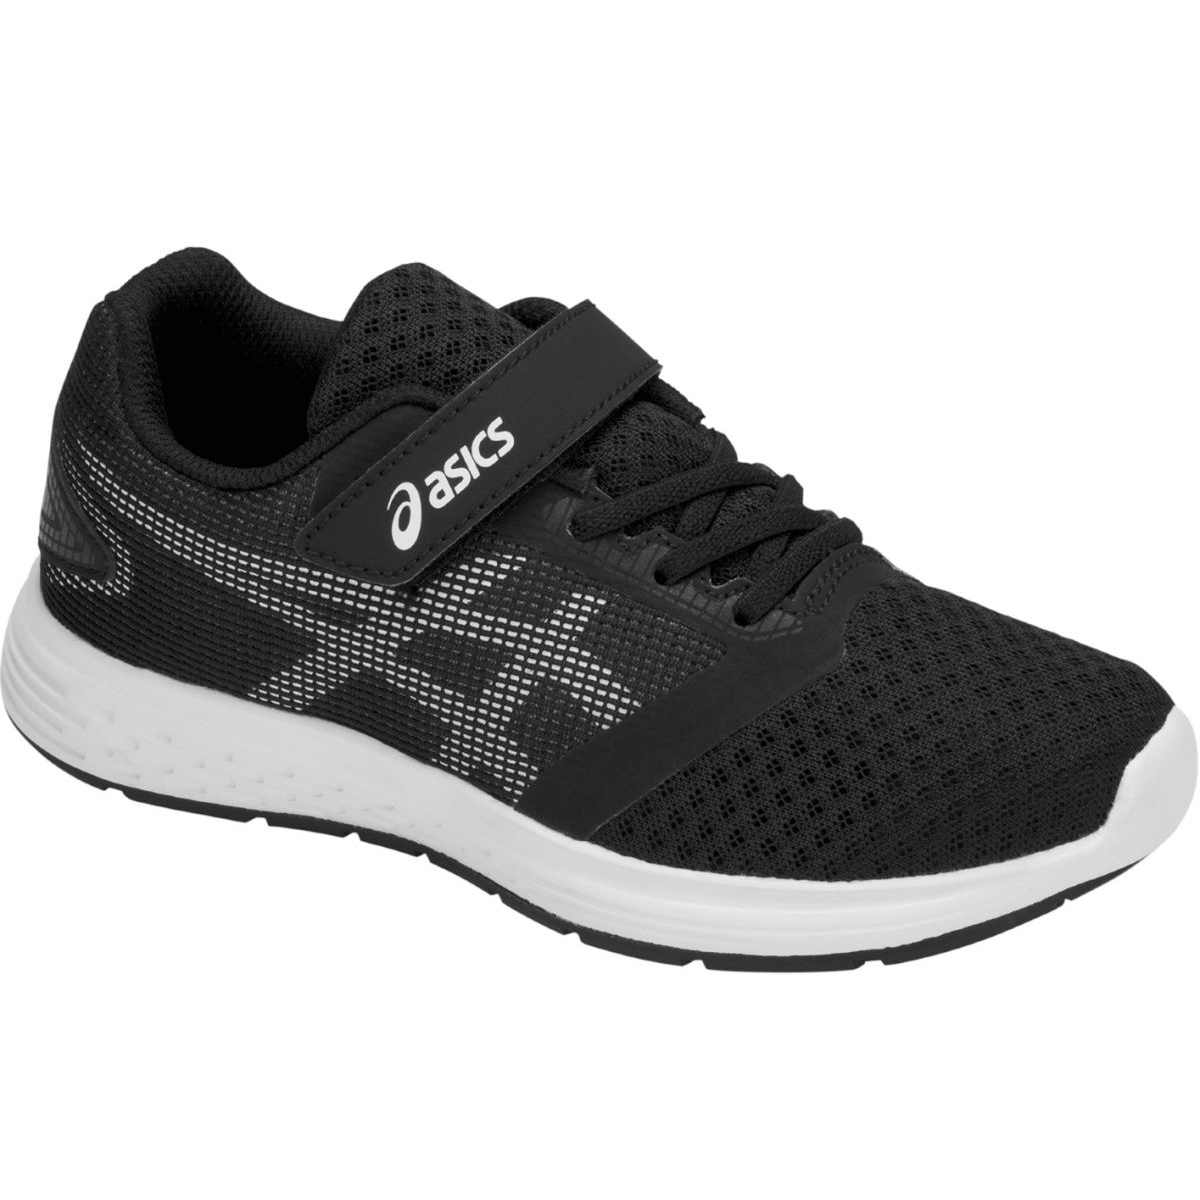 Details about Black Running shoes Asics Patriot 10 Ps Jr 1014A026-004